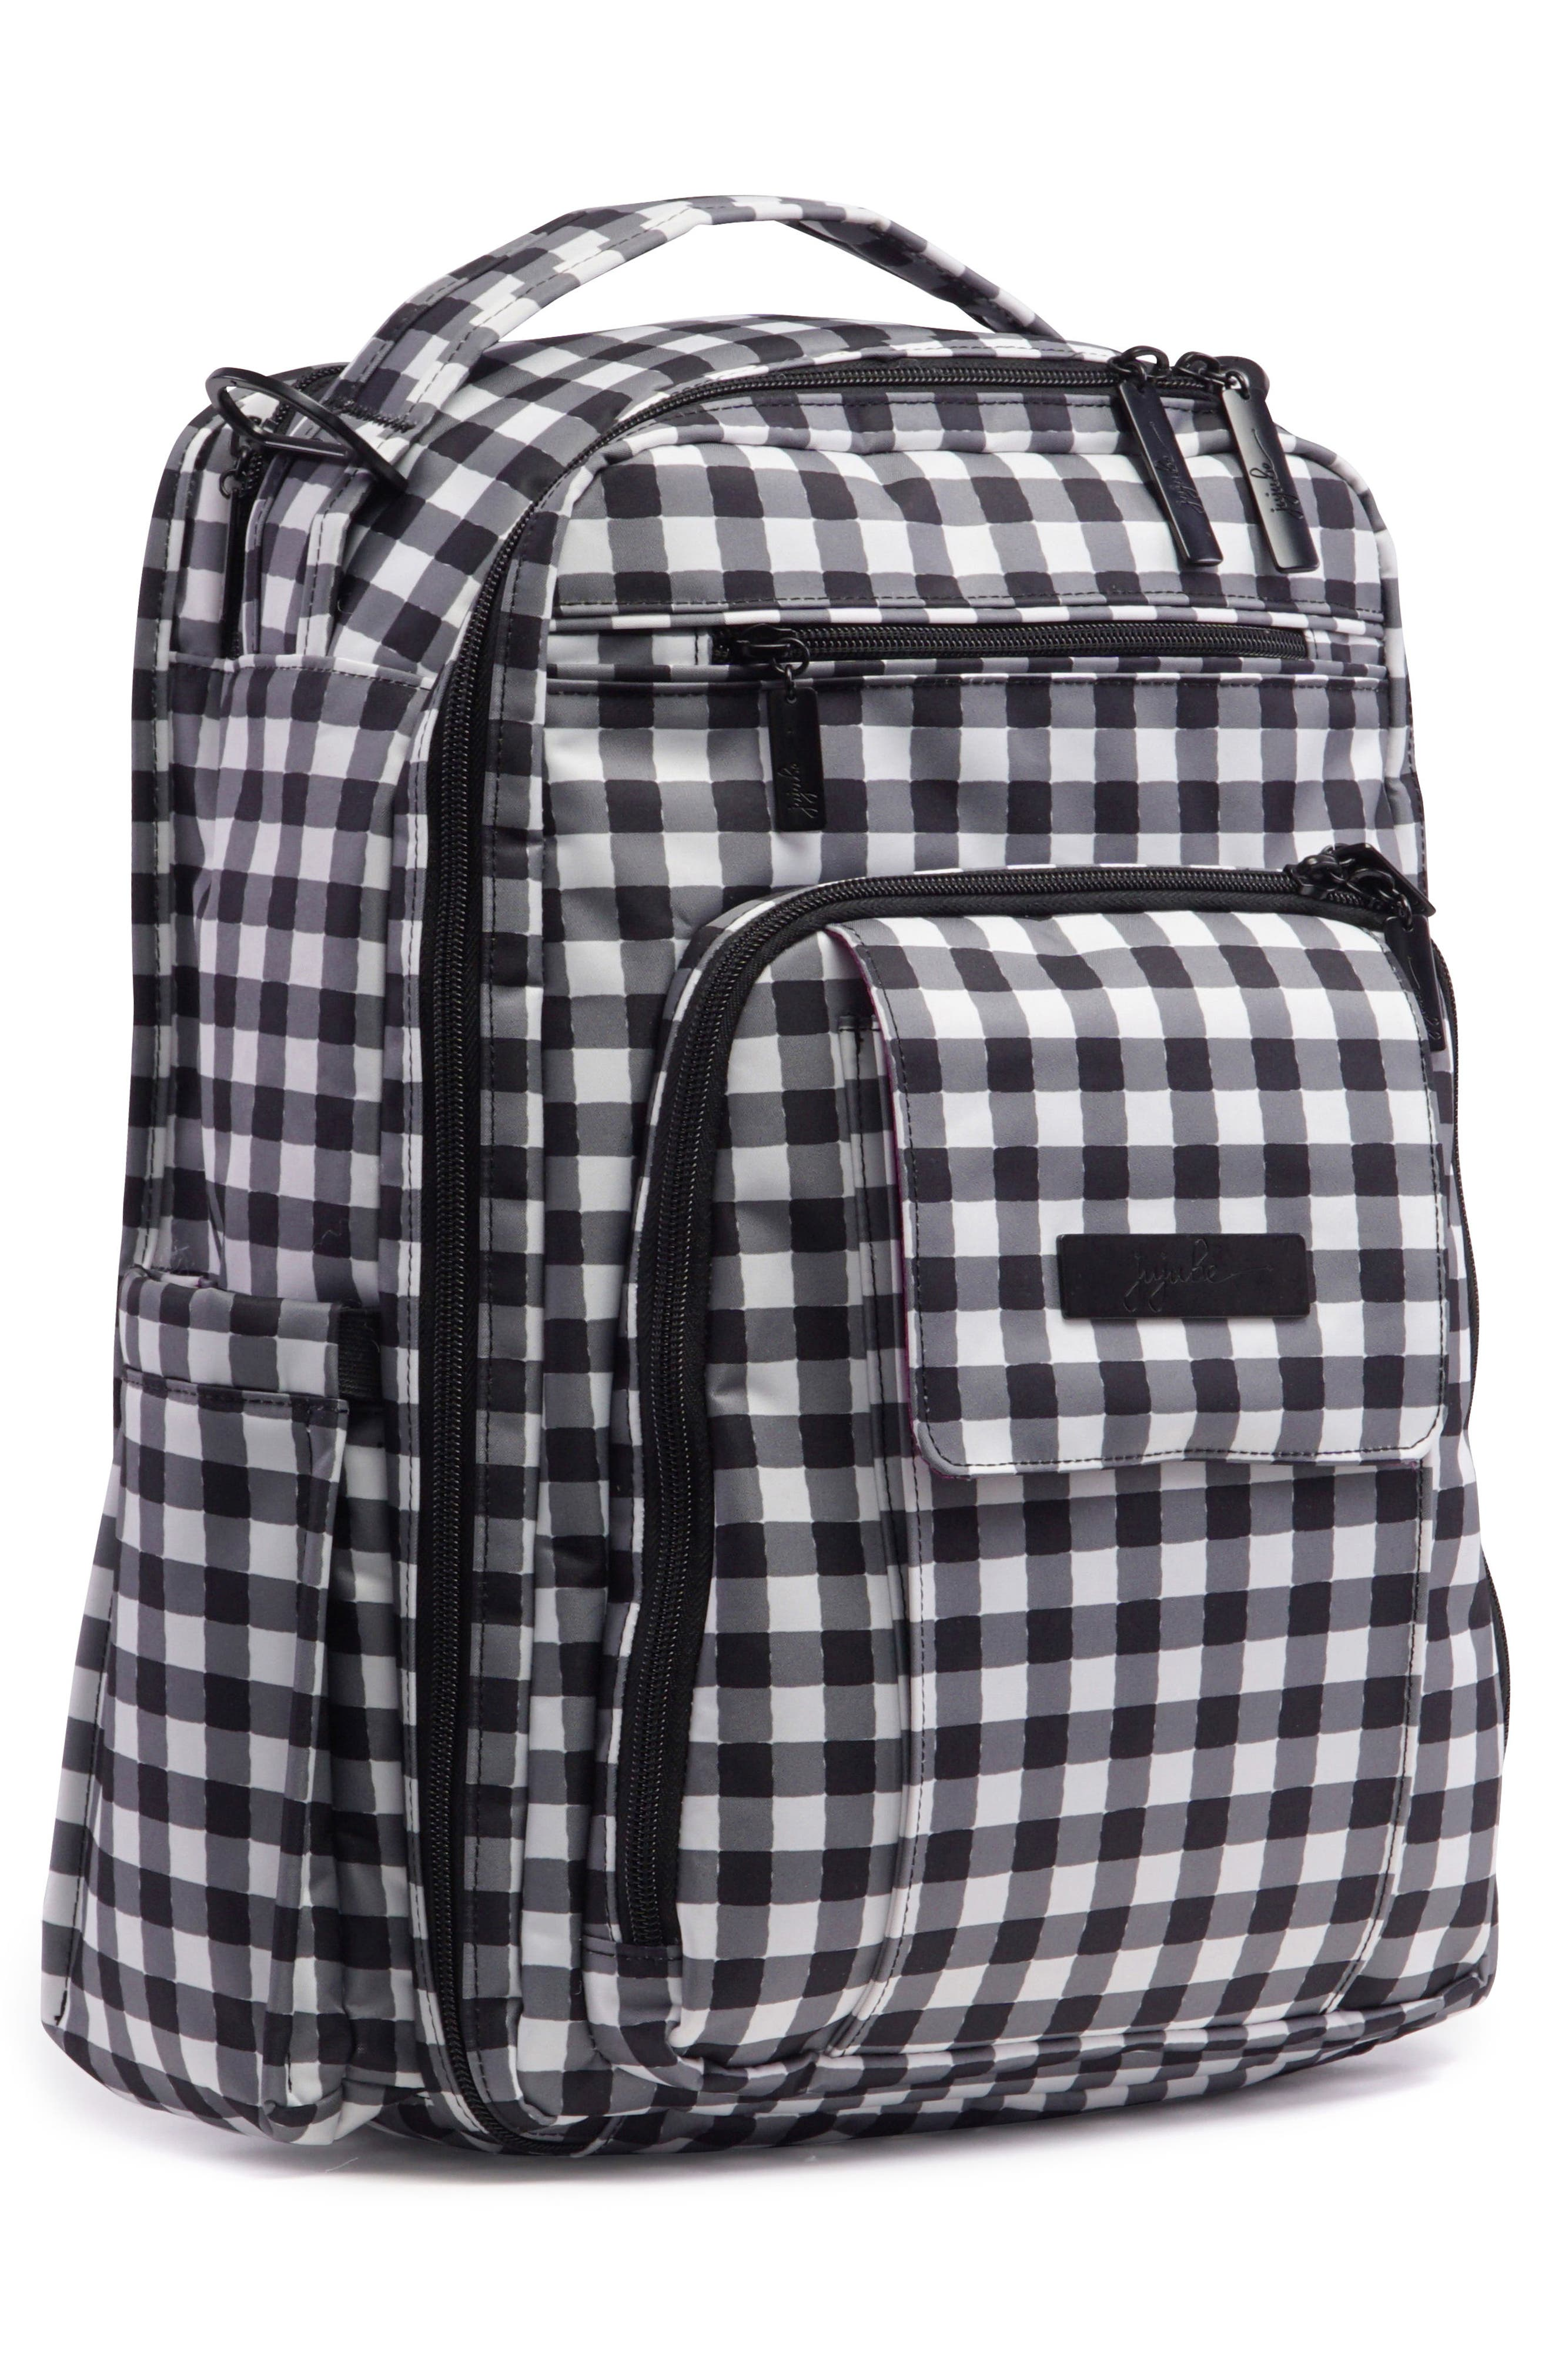 'Be Right Back - Onyx Collection' Diaper Backpack,                             Alternate thumbnail 2, color,                             Gingham Style